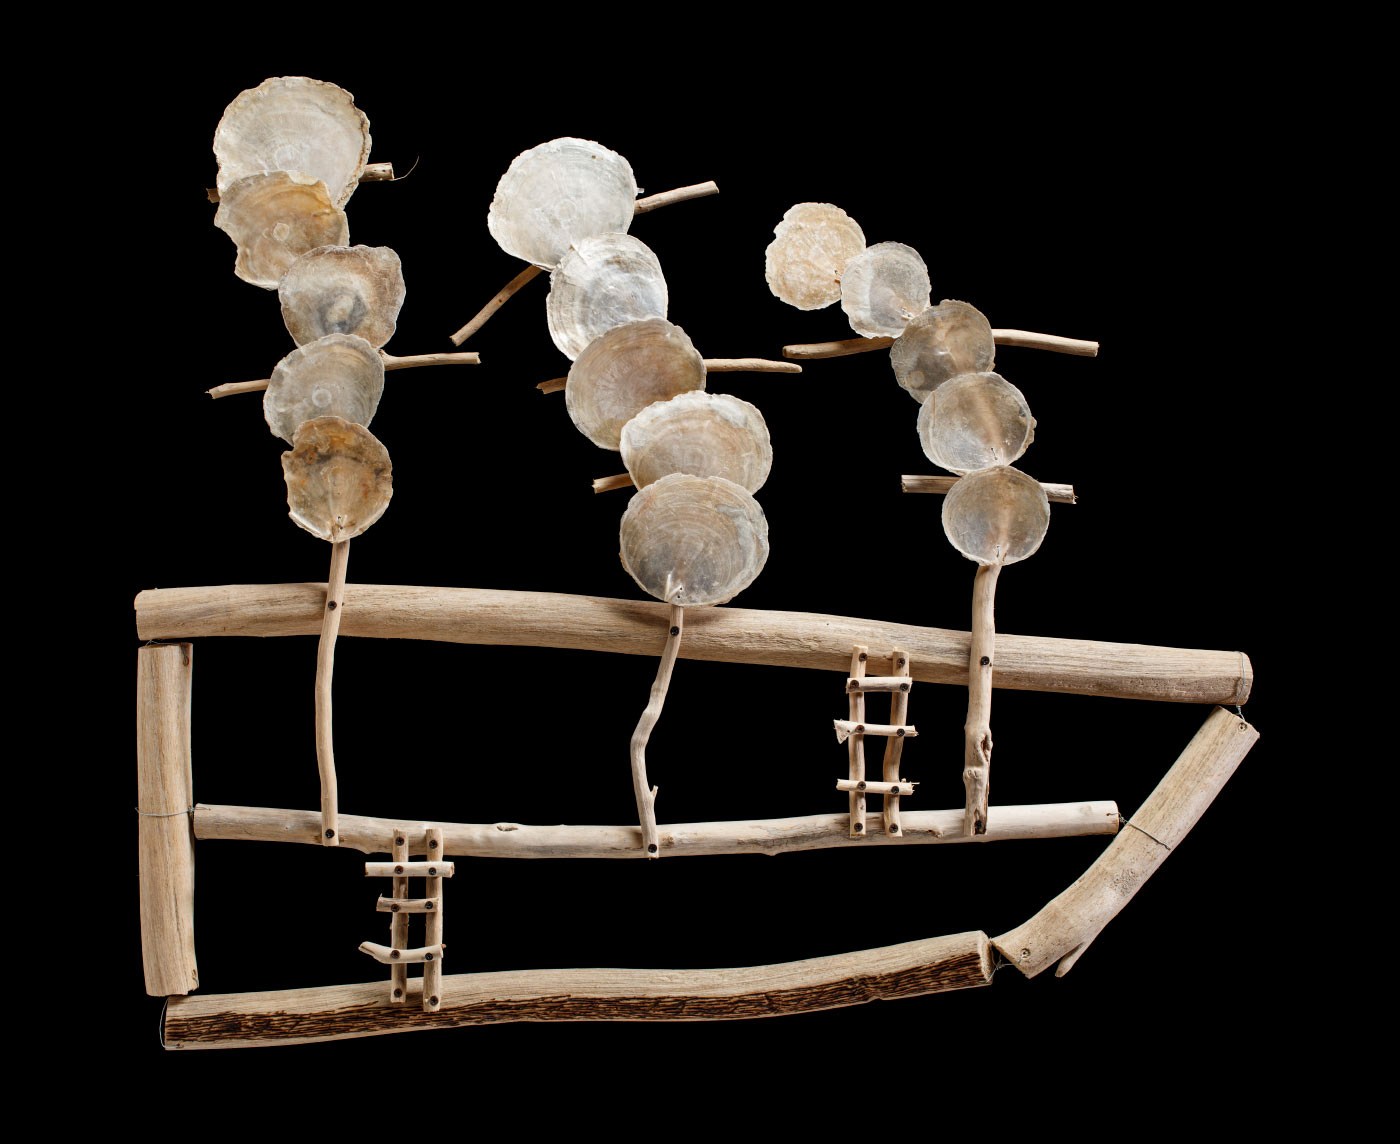 Sculpture of a driftwood boat, with two ladders at the side, and three pearlescent shell sails above. - click to view larger image